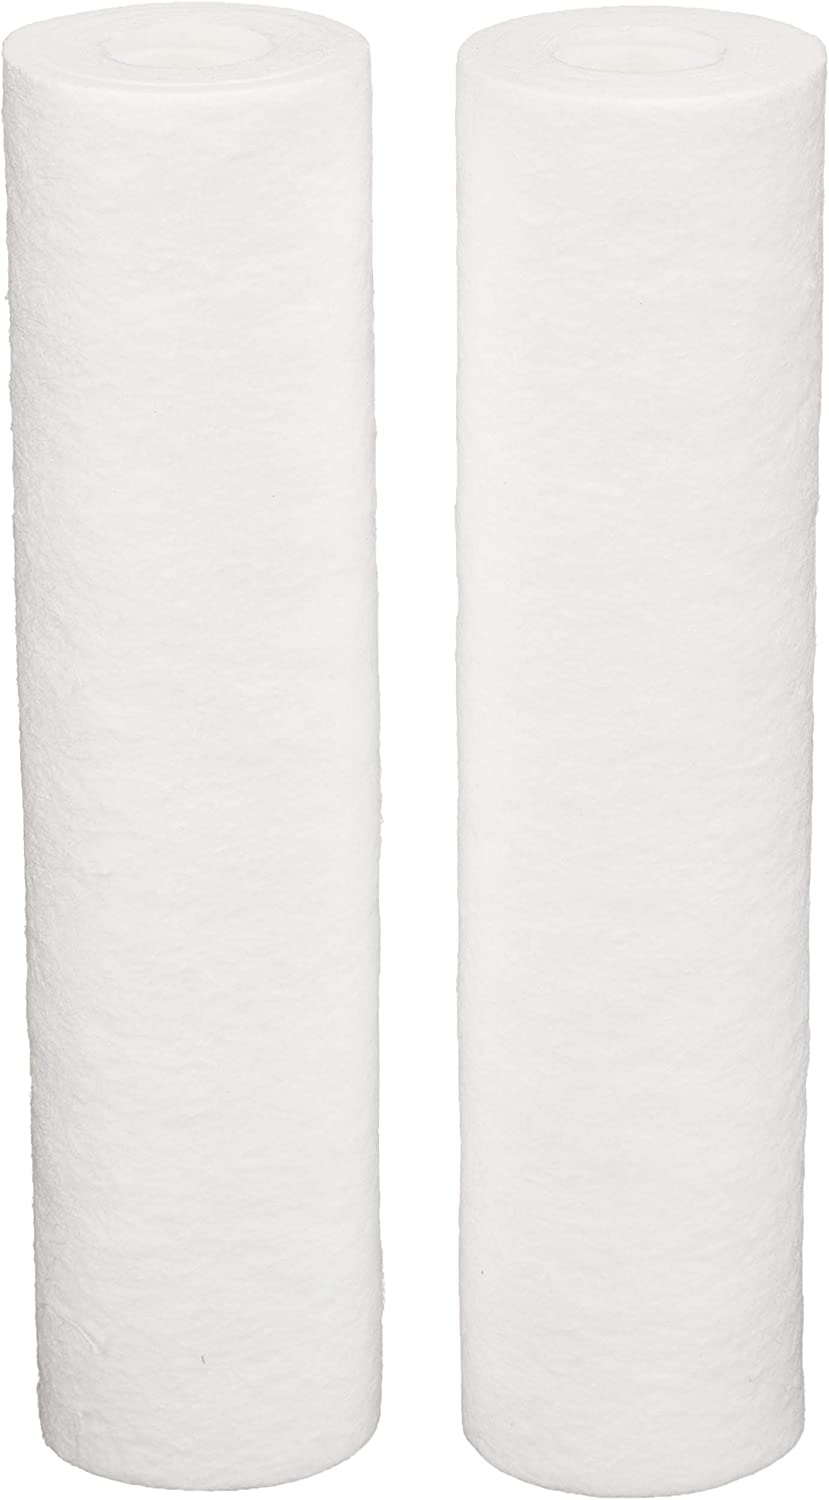 AmazonBasics AMZN-P5A-2PK Standard Duty Premium Water 8,000 Gallons, Equivalent to Culligan P5A, 2-Pack Whole House Replacement Filter, White